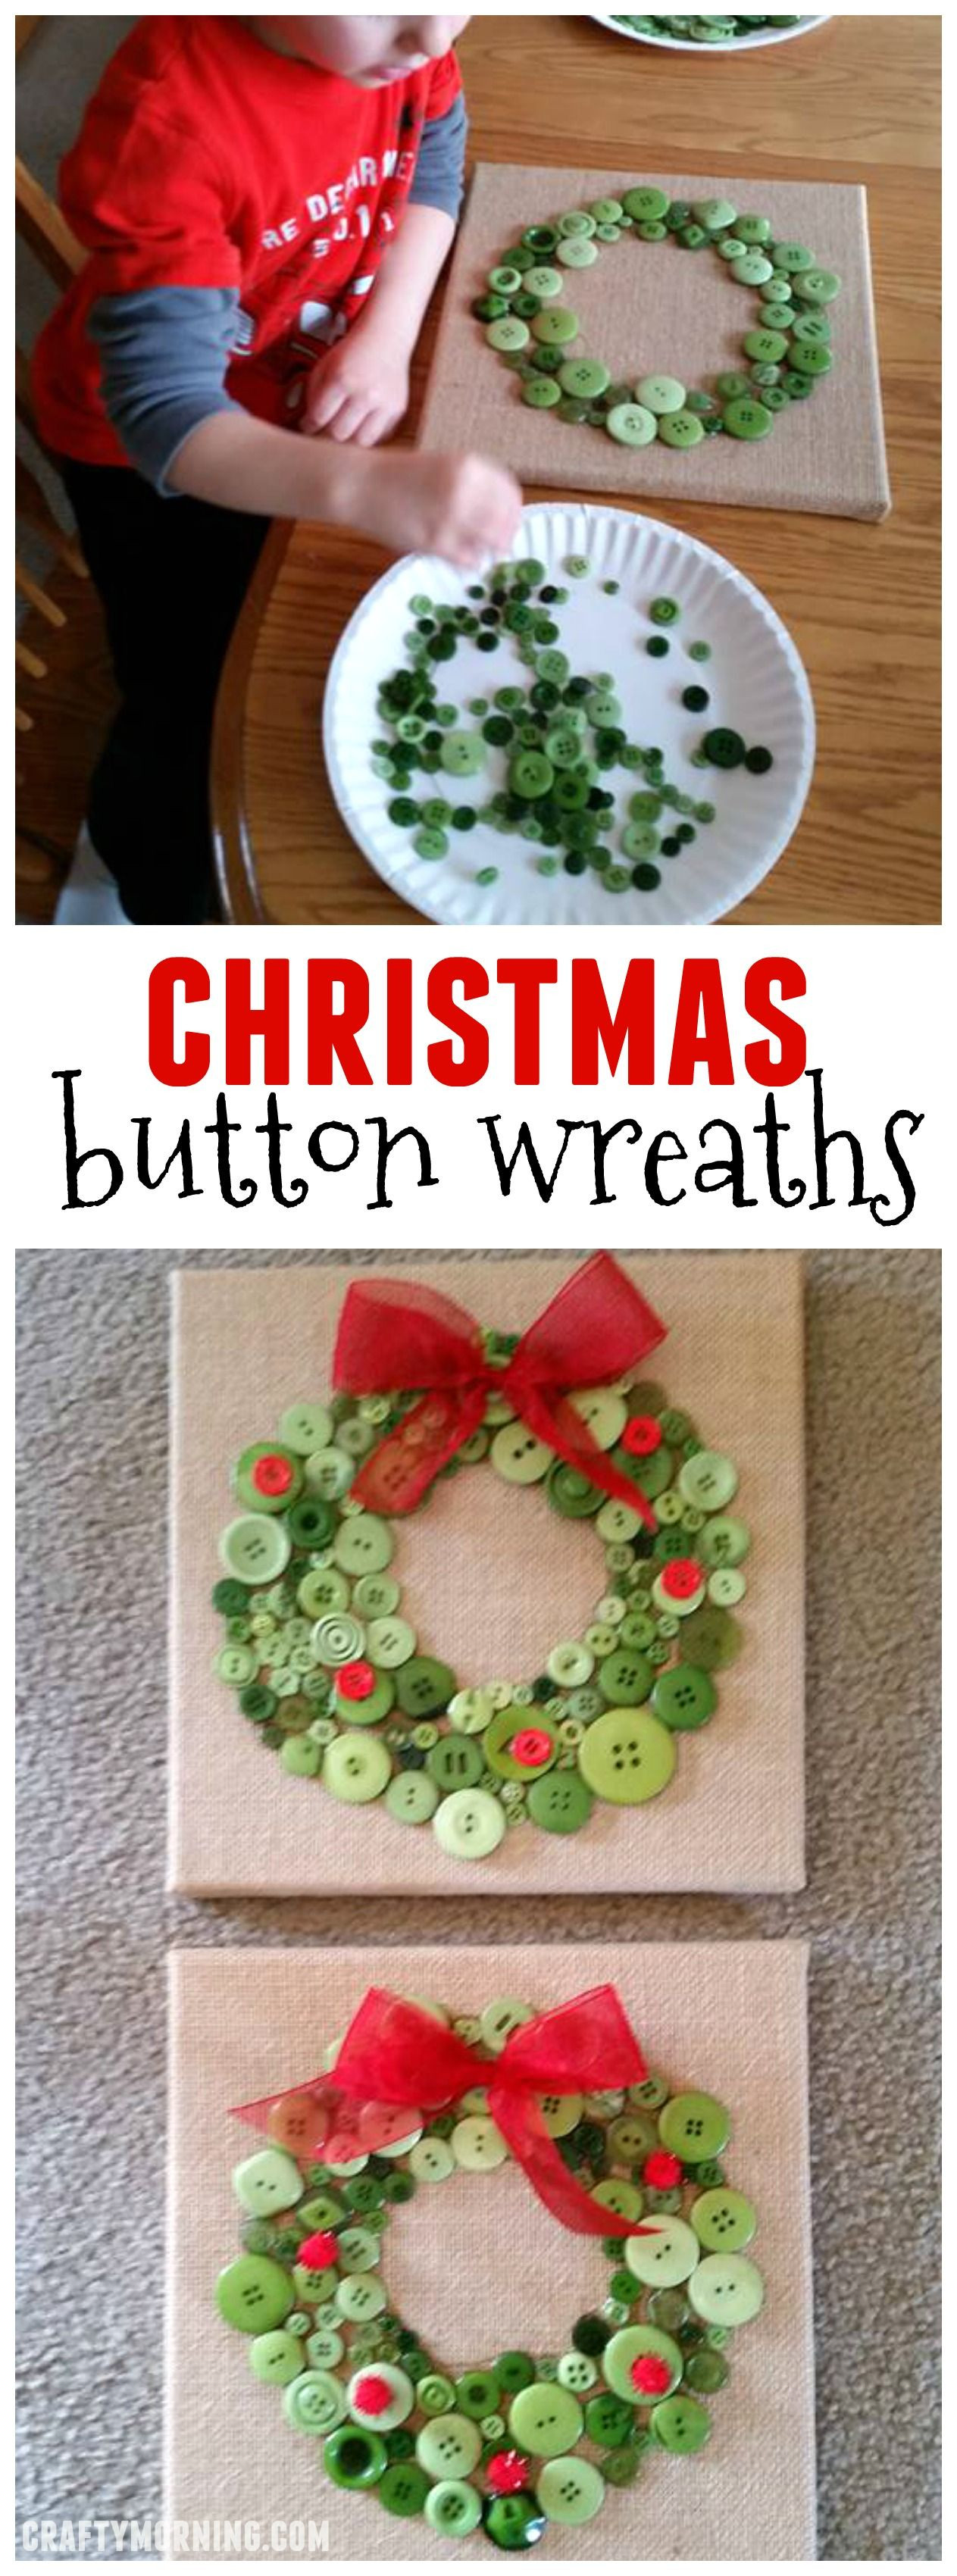 Best ideas about Crafts For Christmas Gifts . Save or Pin Christmas button wreaths for a kids craft oo cute Now.